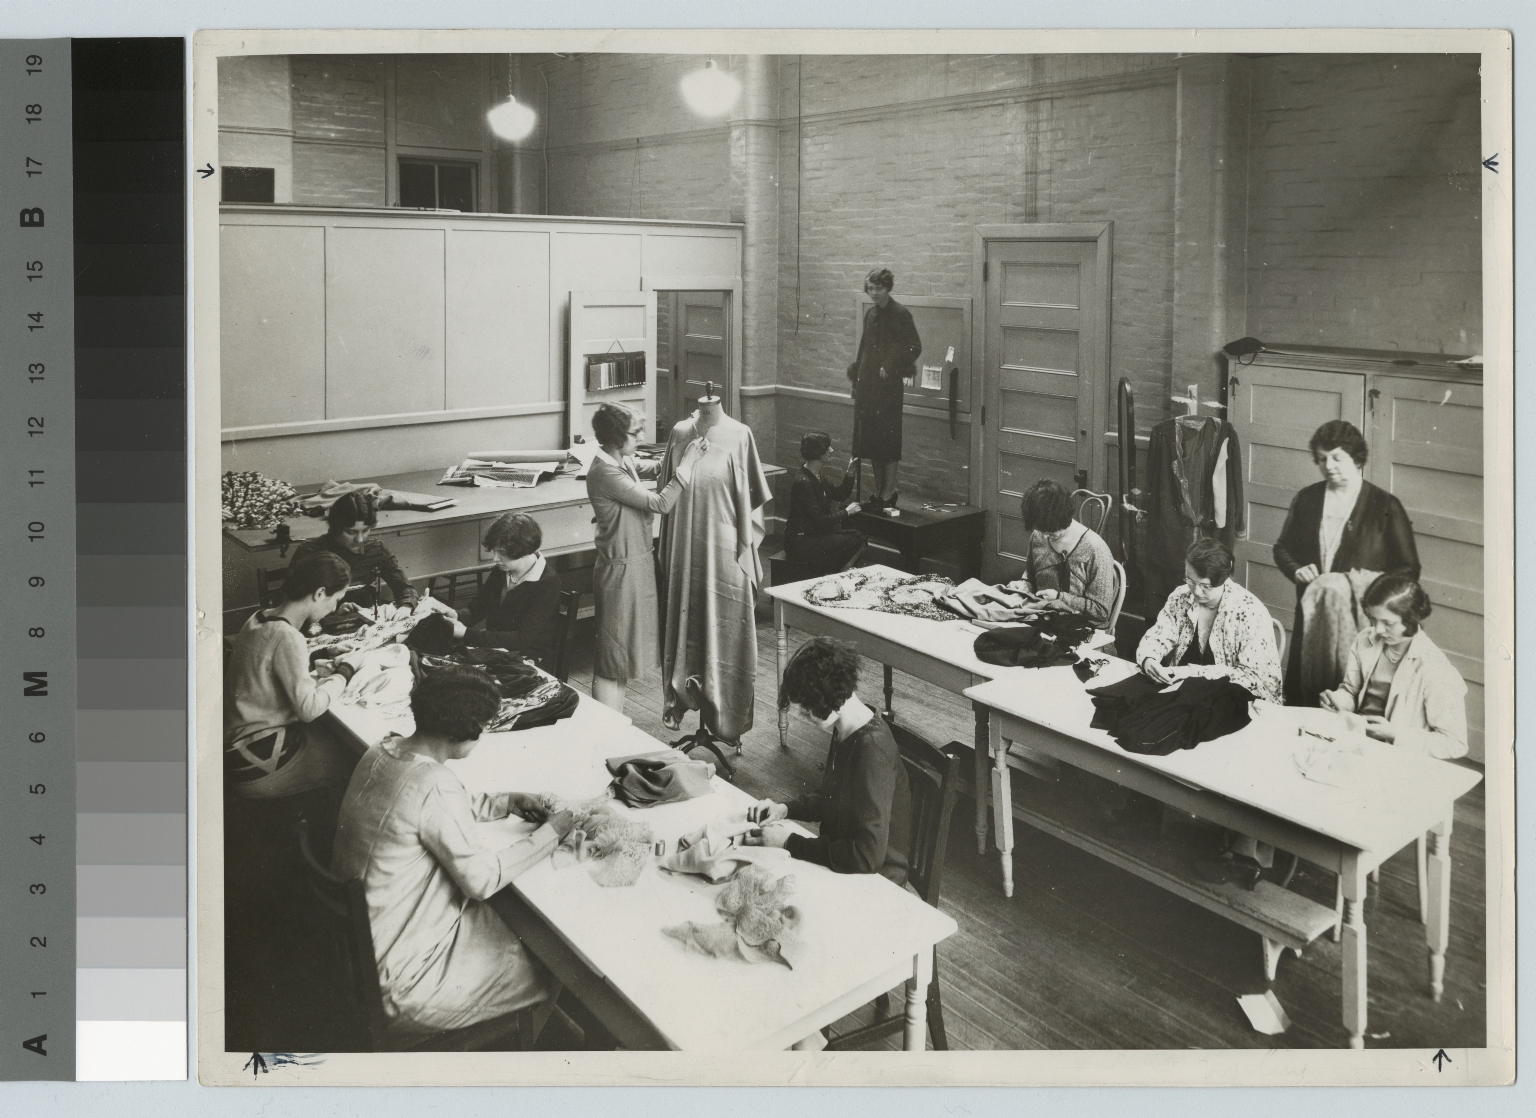 Students sew in clothing construction class, Retail Distribution Course, Rochester Athenaeum and Mechanics Institute